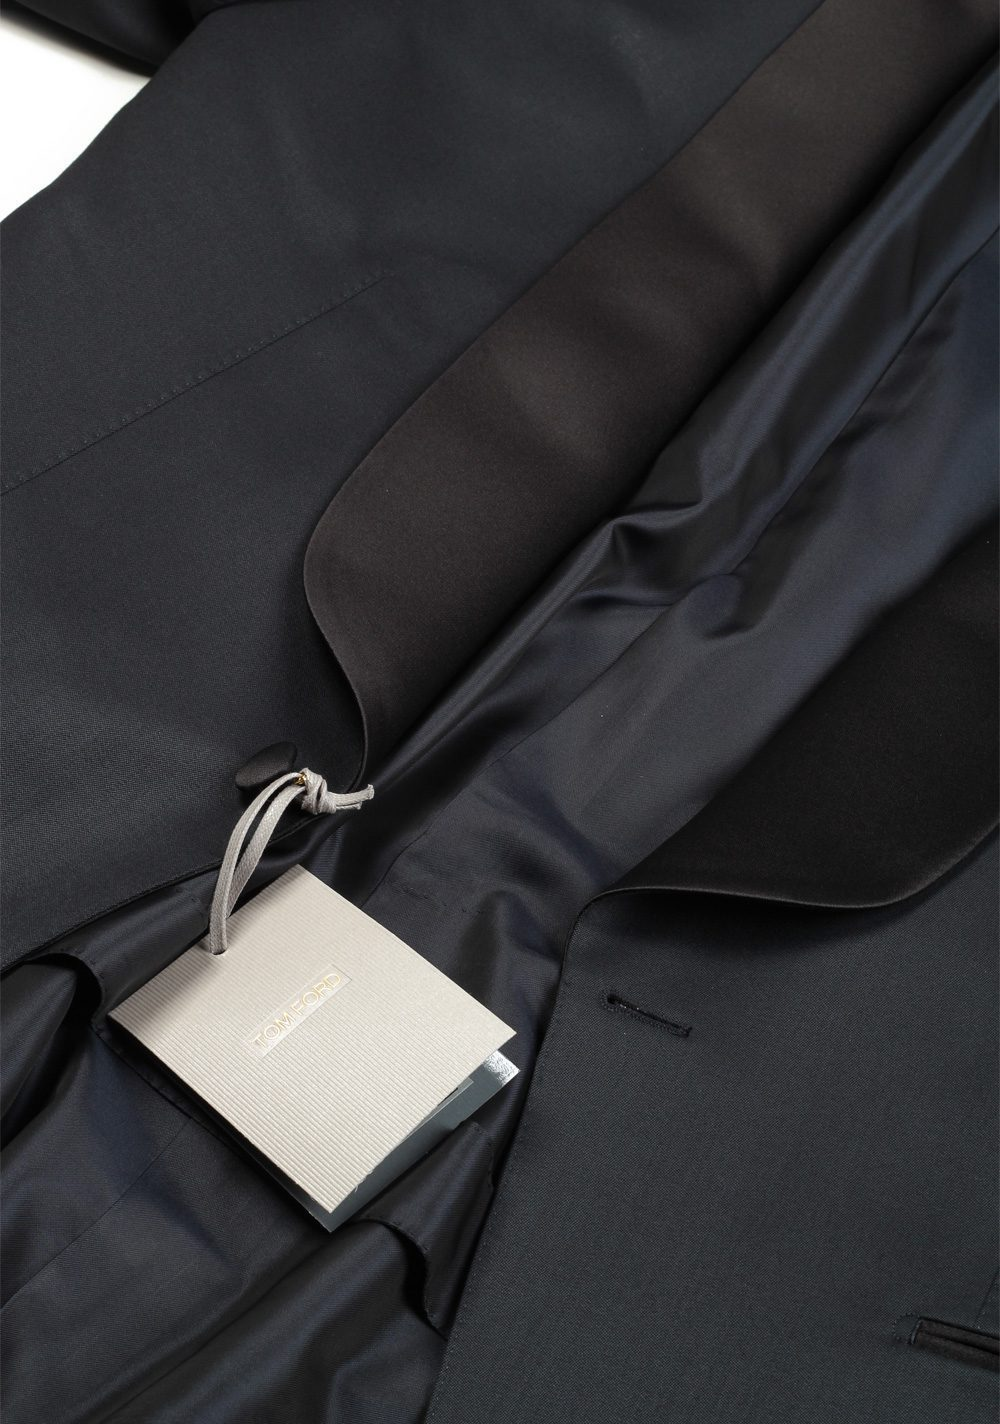 TOM FORD O'Connor Midnight Blue Tuxedo Smoking Suit Size 54 / 44R U.S. | Costume Limité